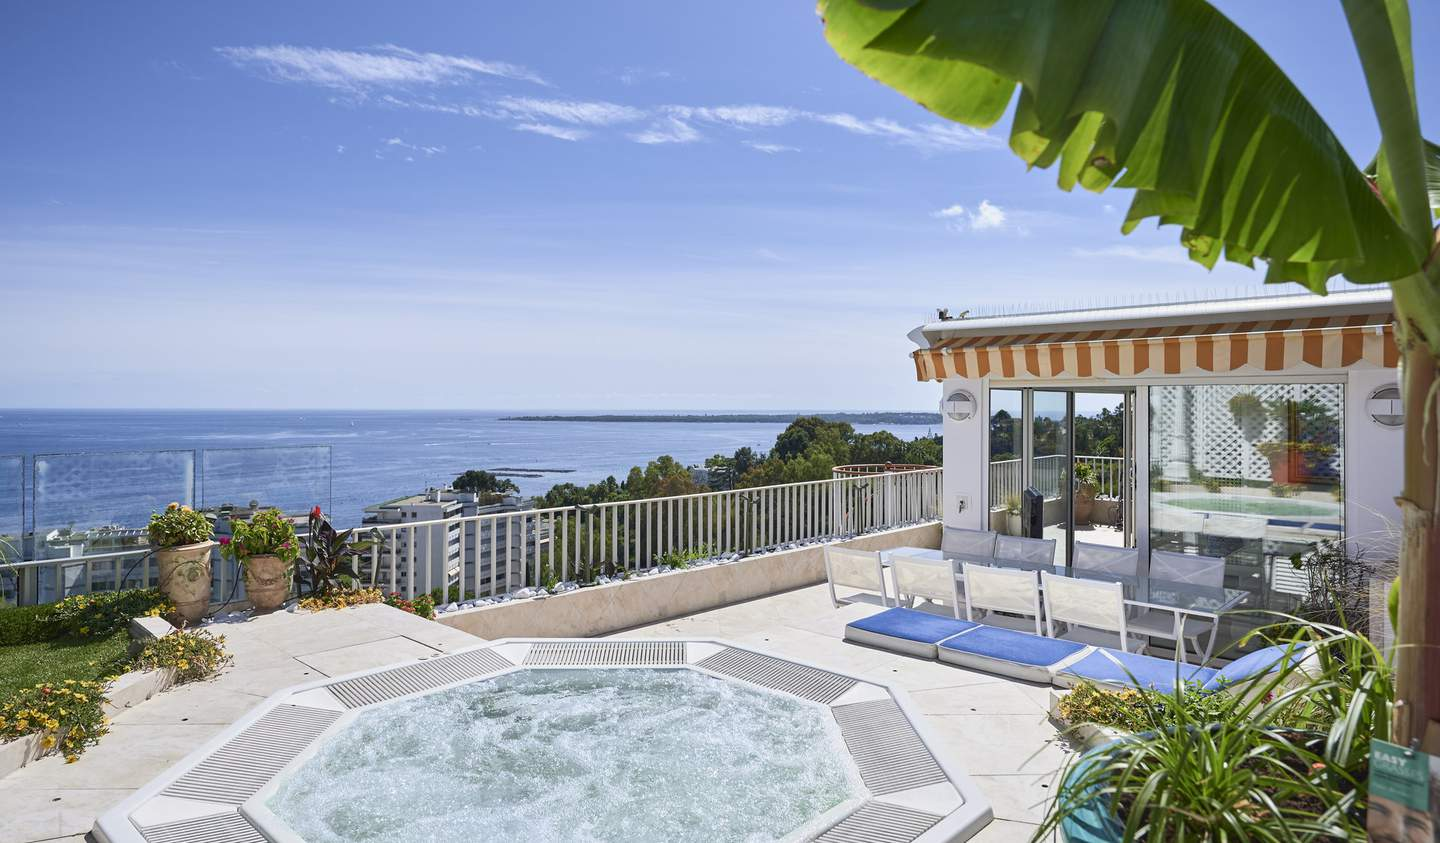 Apartment with terrace and pool Le golfe juan